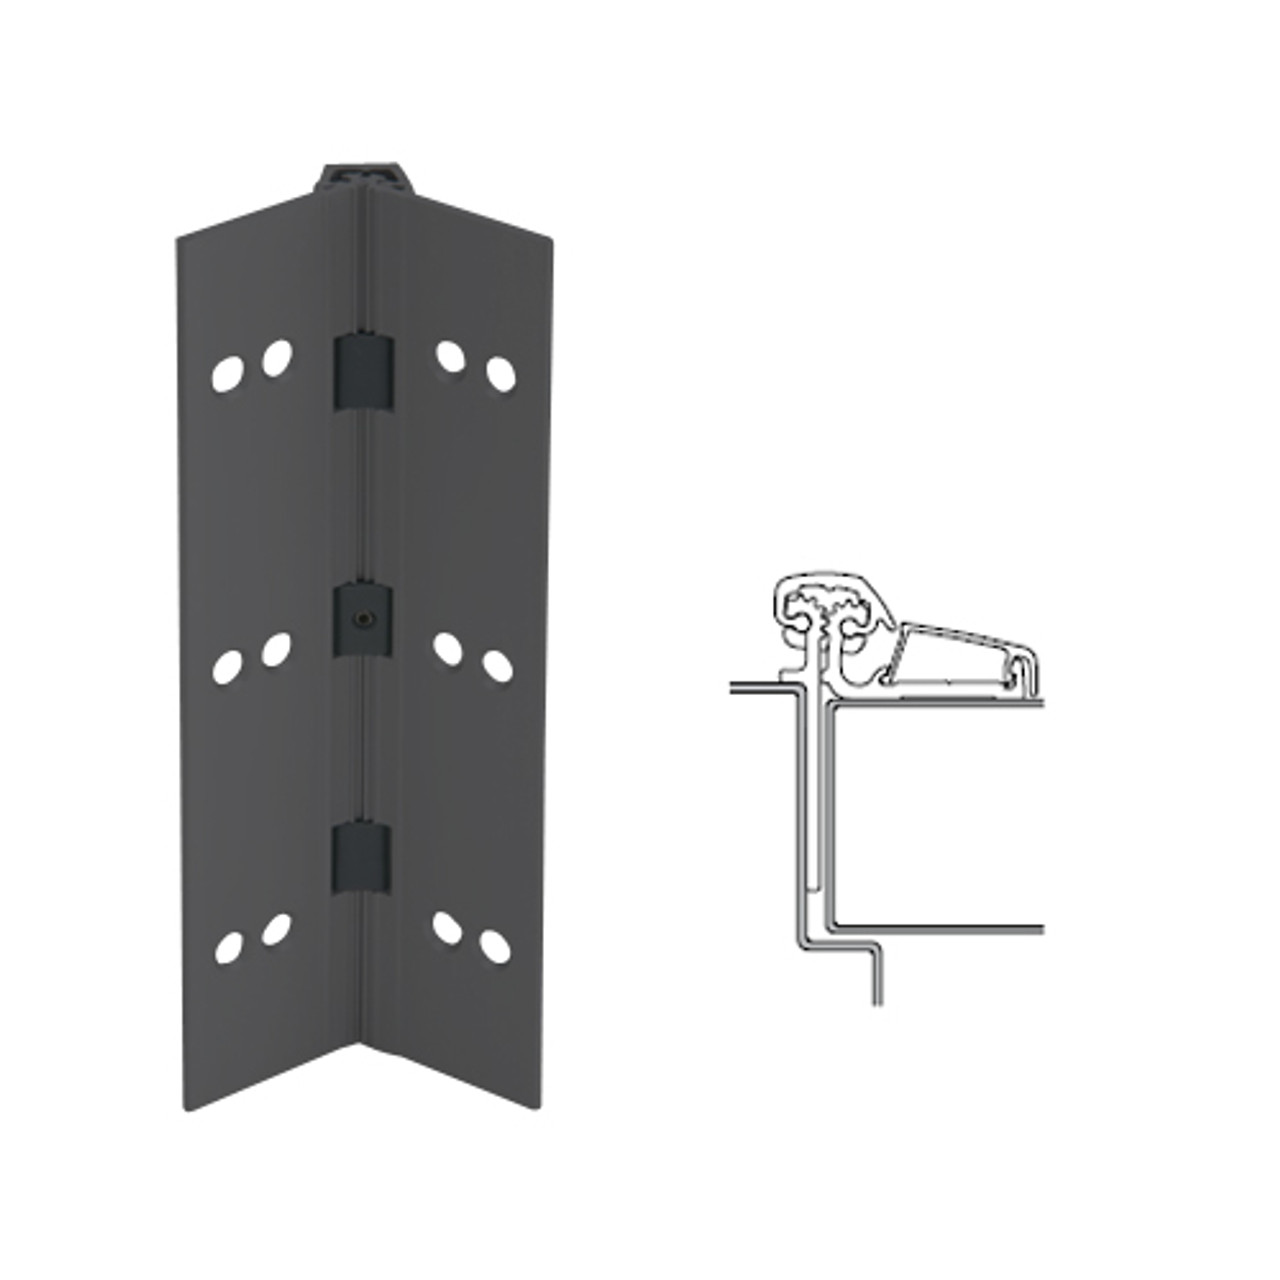 053XY-315AN-83-WD IVES Adjustable Half Surface Continuous Geared Hinges with Wood Screws in Anodized Black